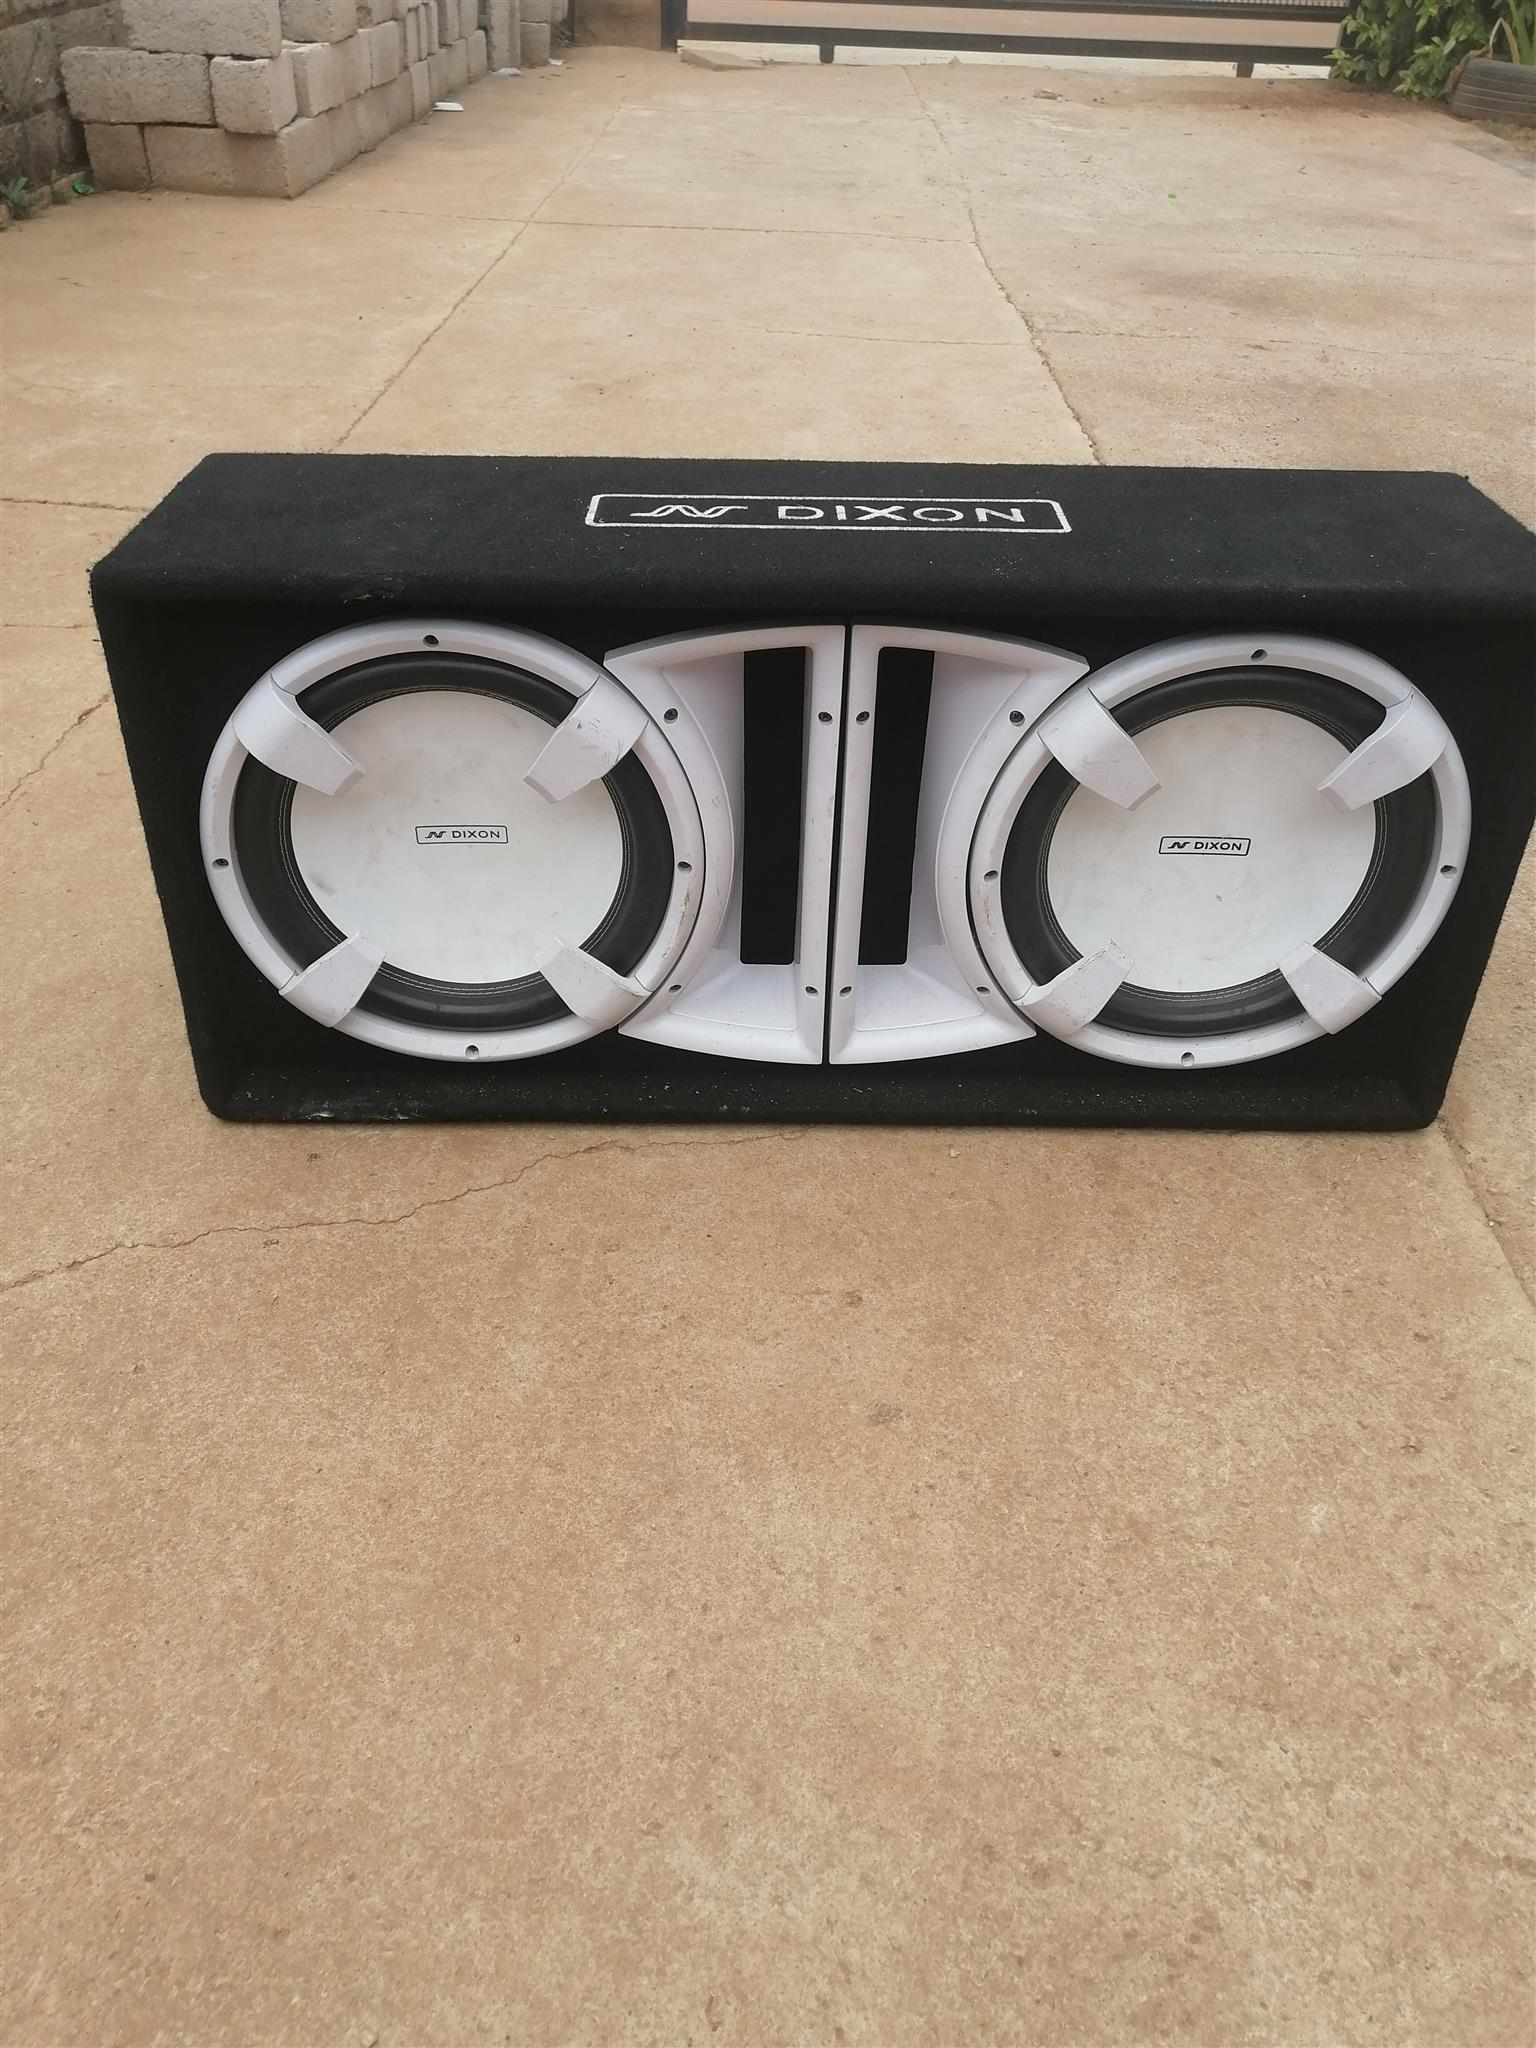 Double subwoofer in good condition for sale